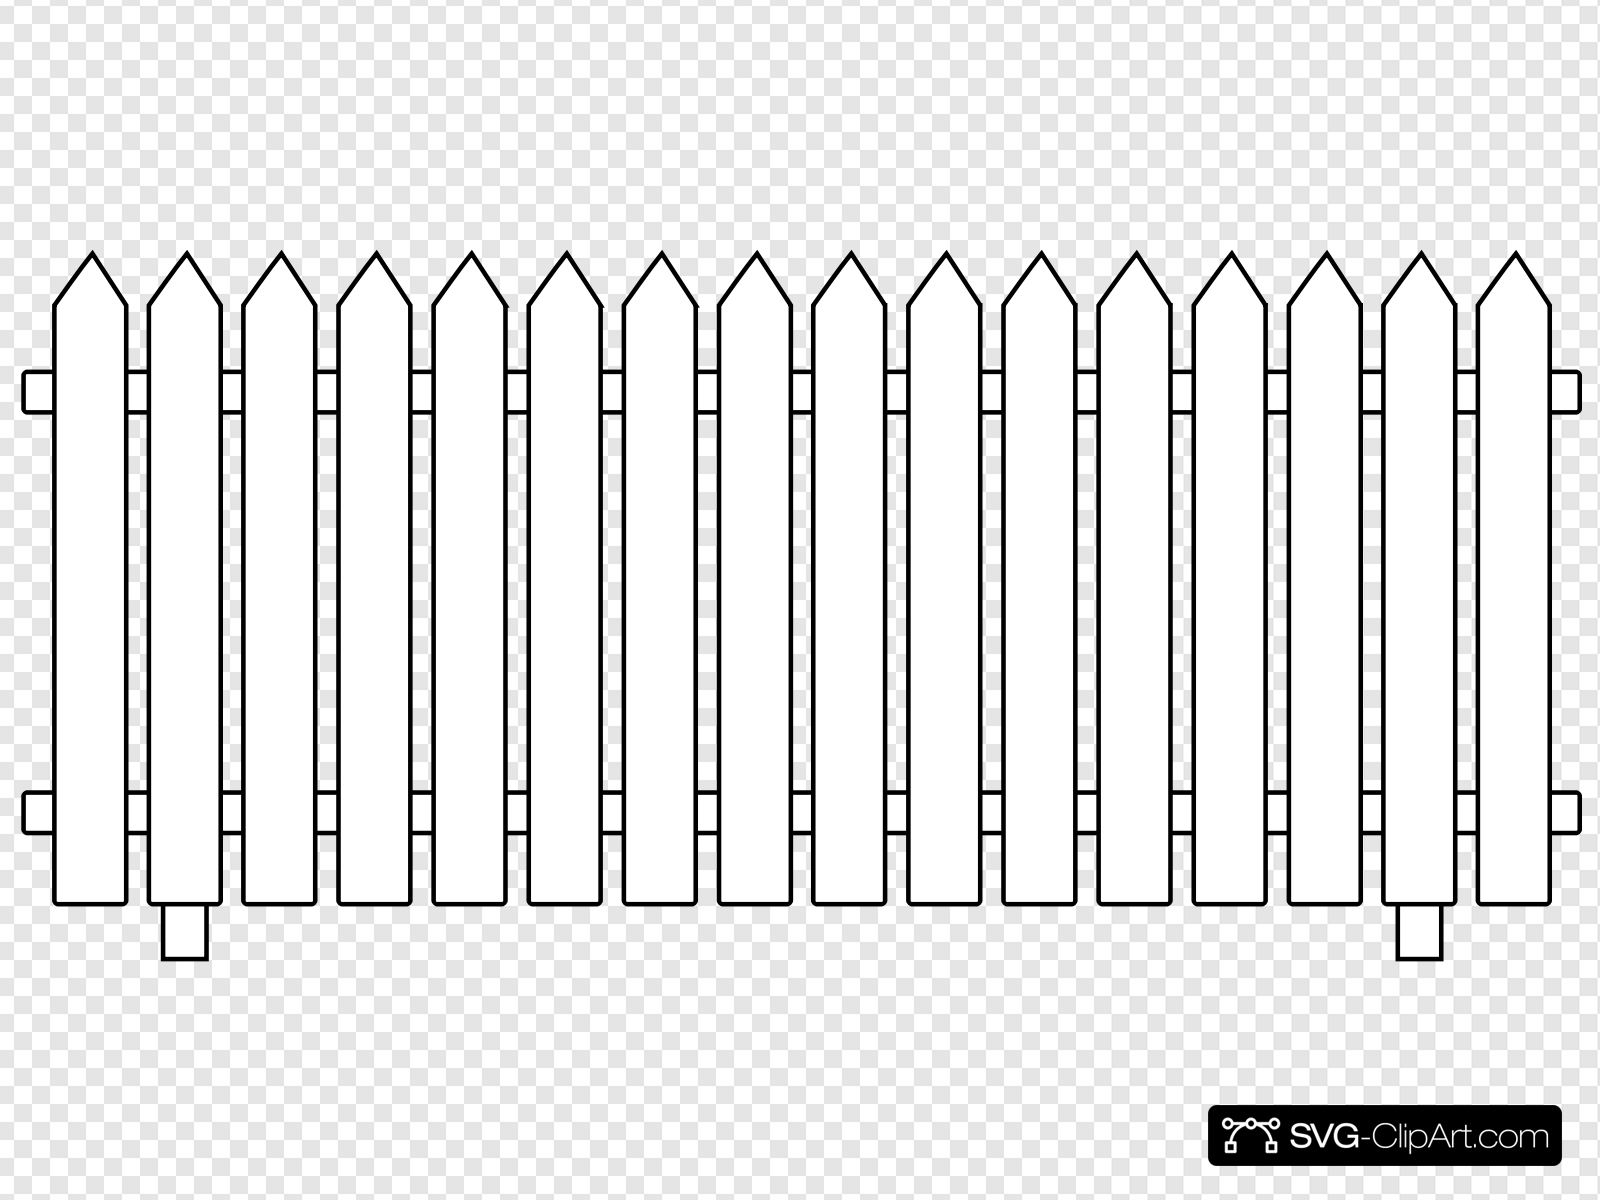 White picket fence clipart graphic library stock White Picket Fence Clip art, Icon and SVG - SVG Clipart graphic library stock